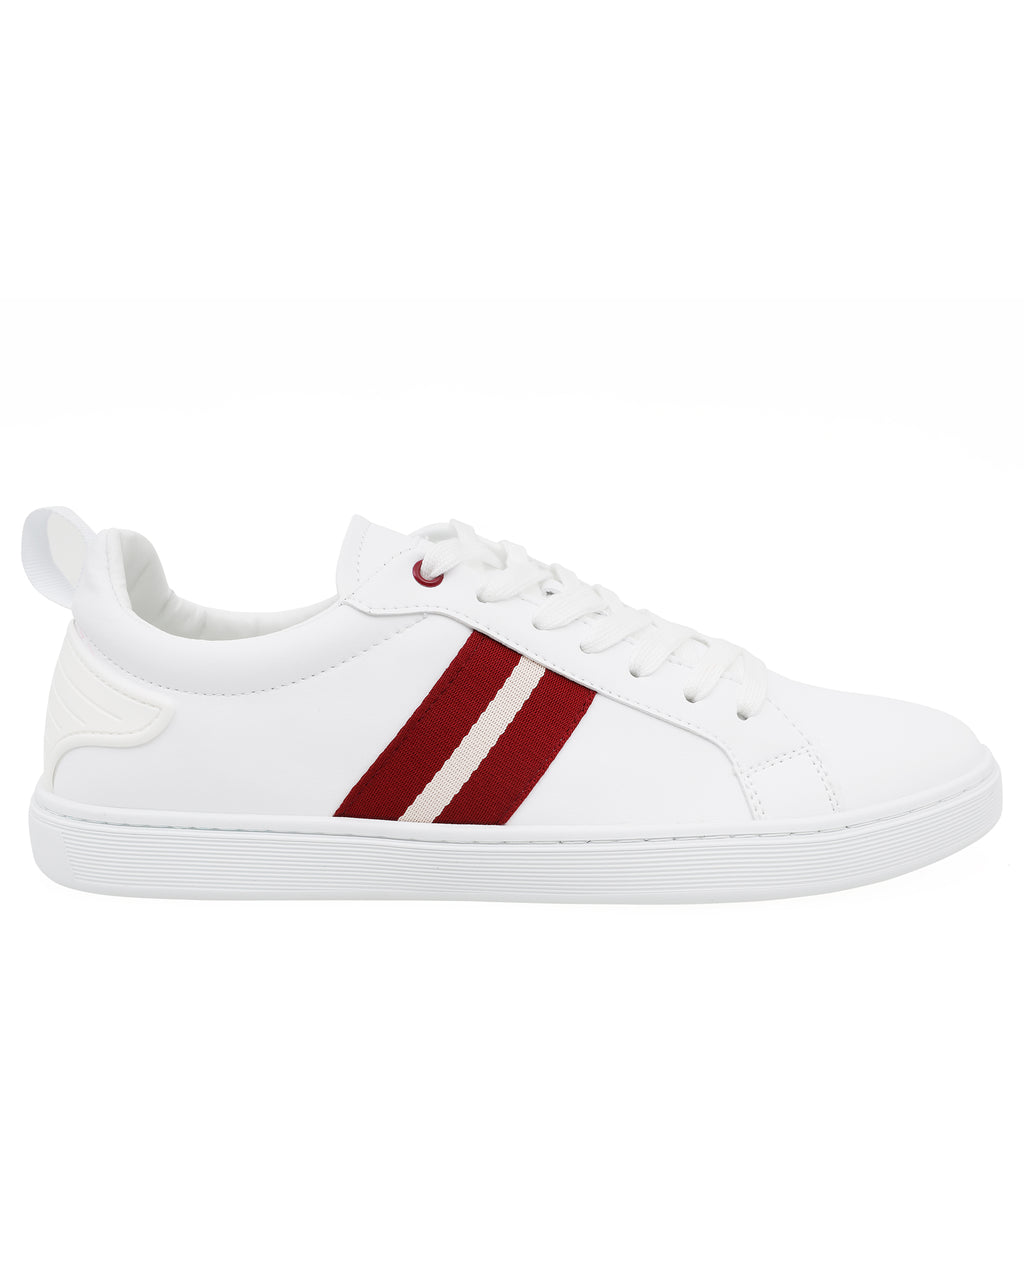 Tomaz TR999M Men's Sneakers (White/Red/Org)